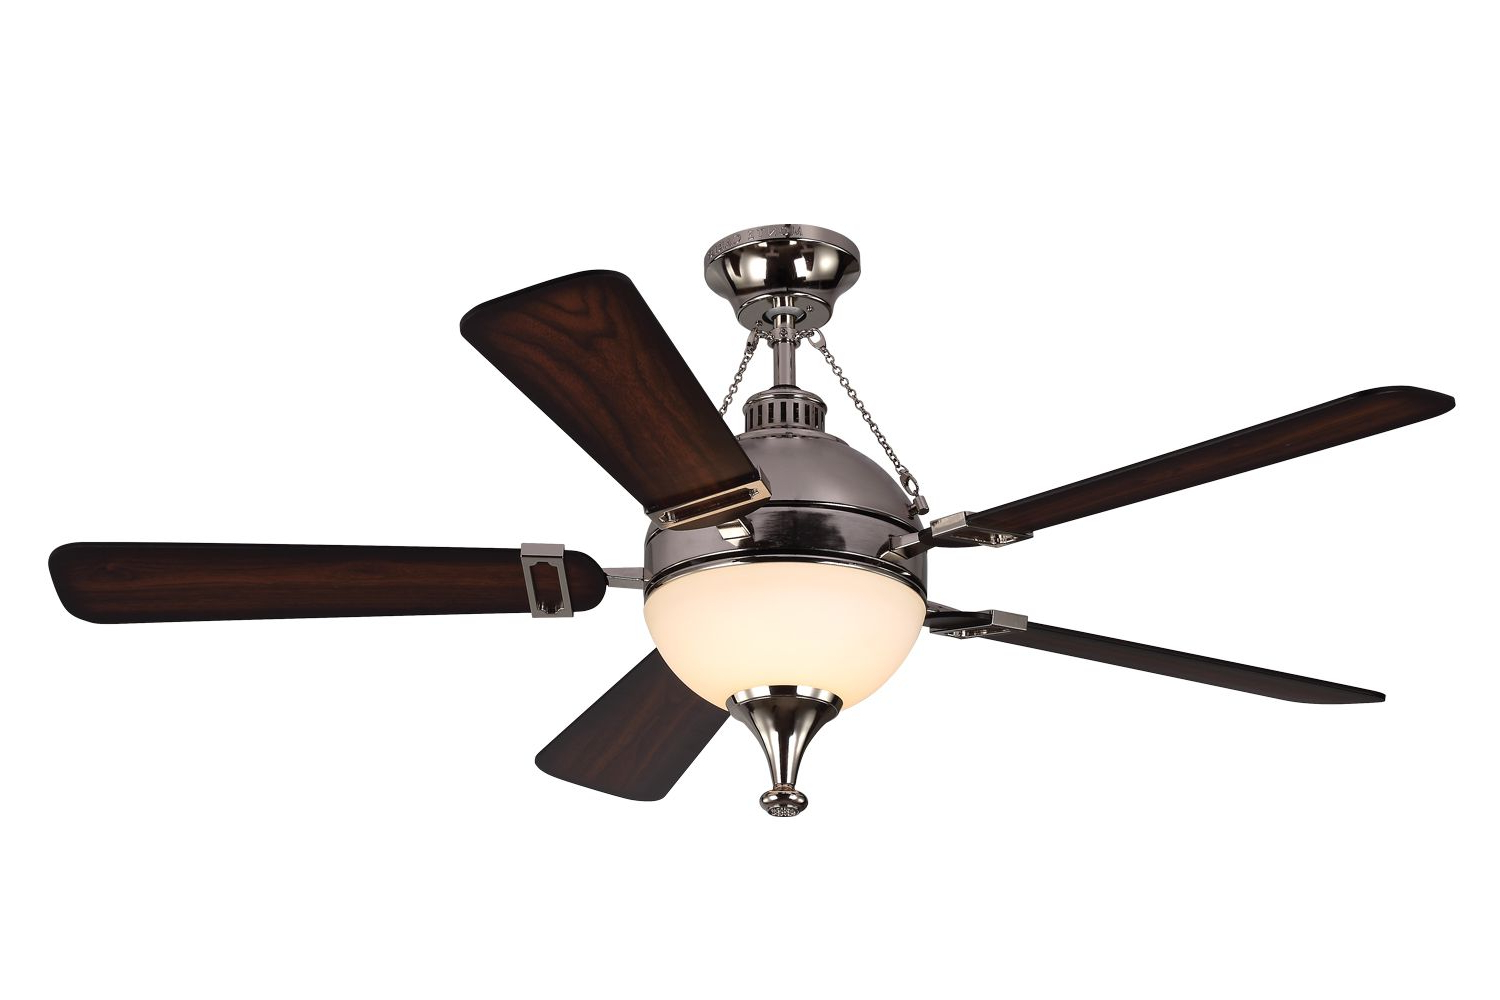 Newest Merging Classic With Modern Design, The Essex Fan From Monte Regarding Timeless 5 Blade Ceiling Fans (View 12 of 20)